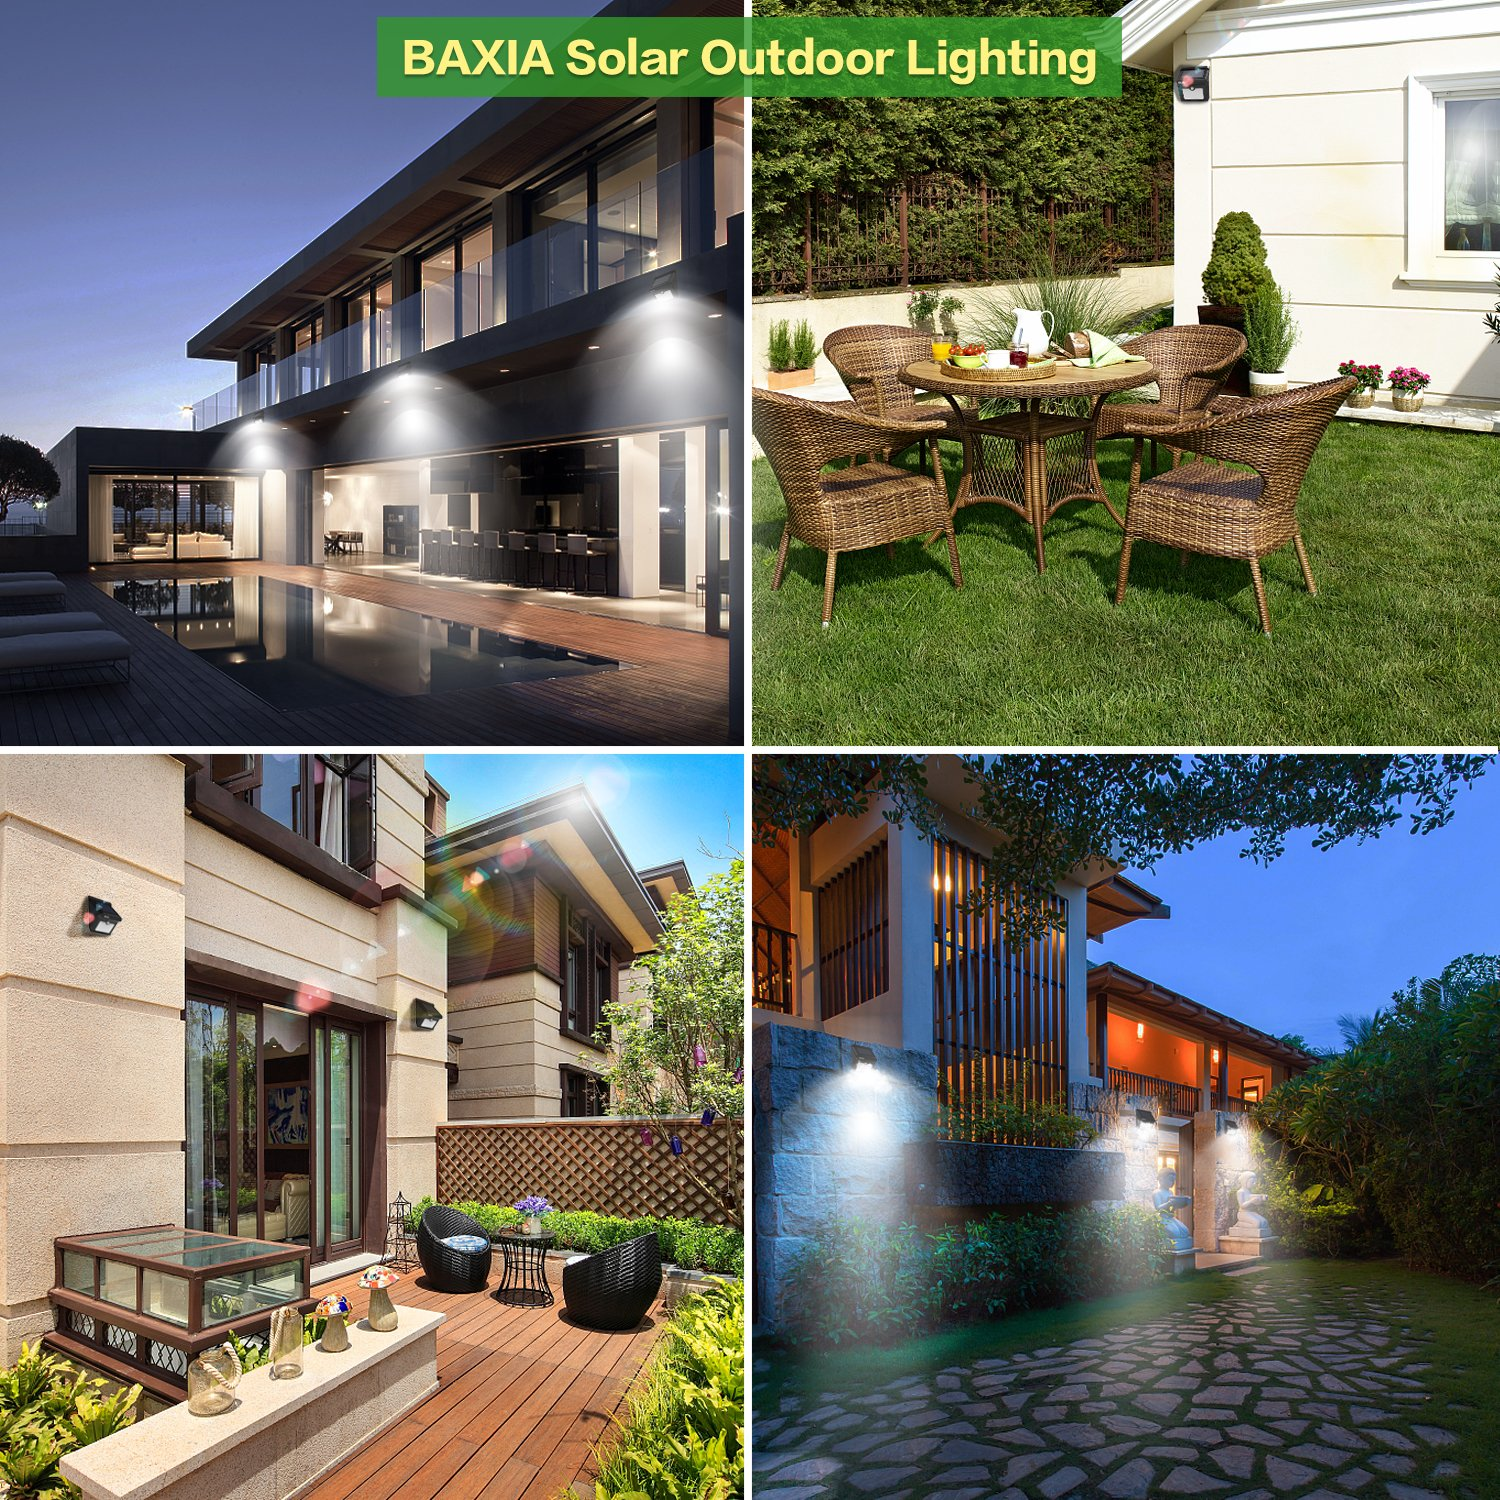 BAXIA Technology LED Solar Lights Outdoor, 400 Lumens Wireless Waterproof Motion Sensor Security Lights for Front Door,Outside Wall,Back Yard,Garage,Garden,Fence,Driveway [Upgraded 28LED 2 Packs] by BAXIA TECHNOLOGY (Image #3)